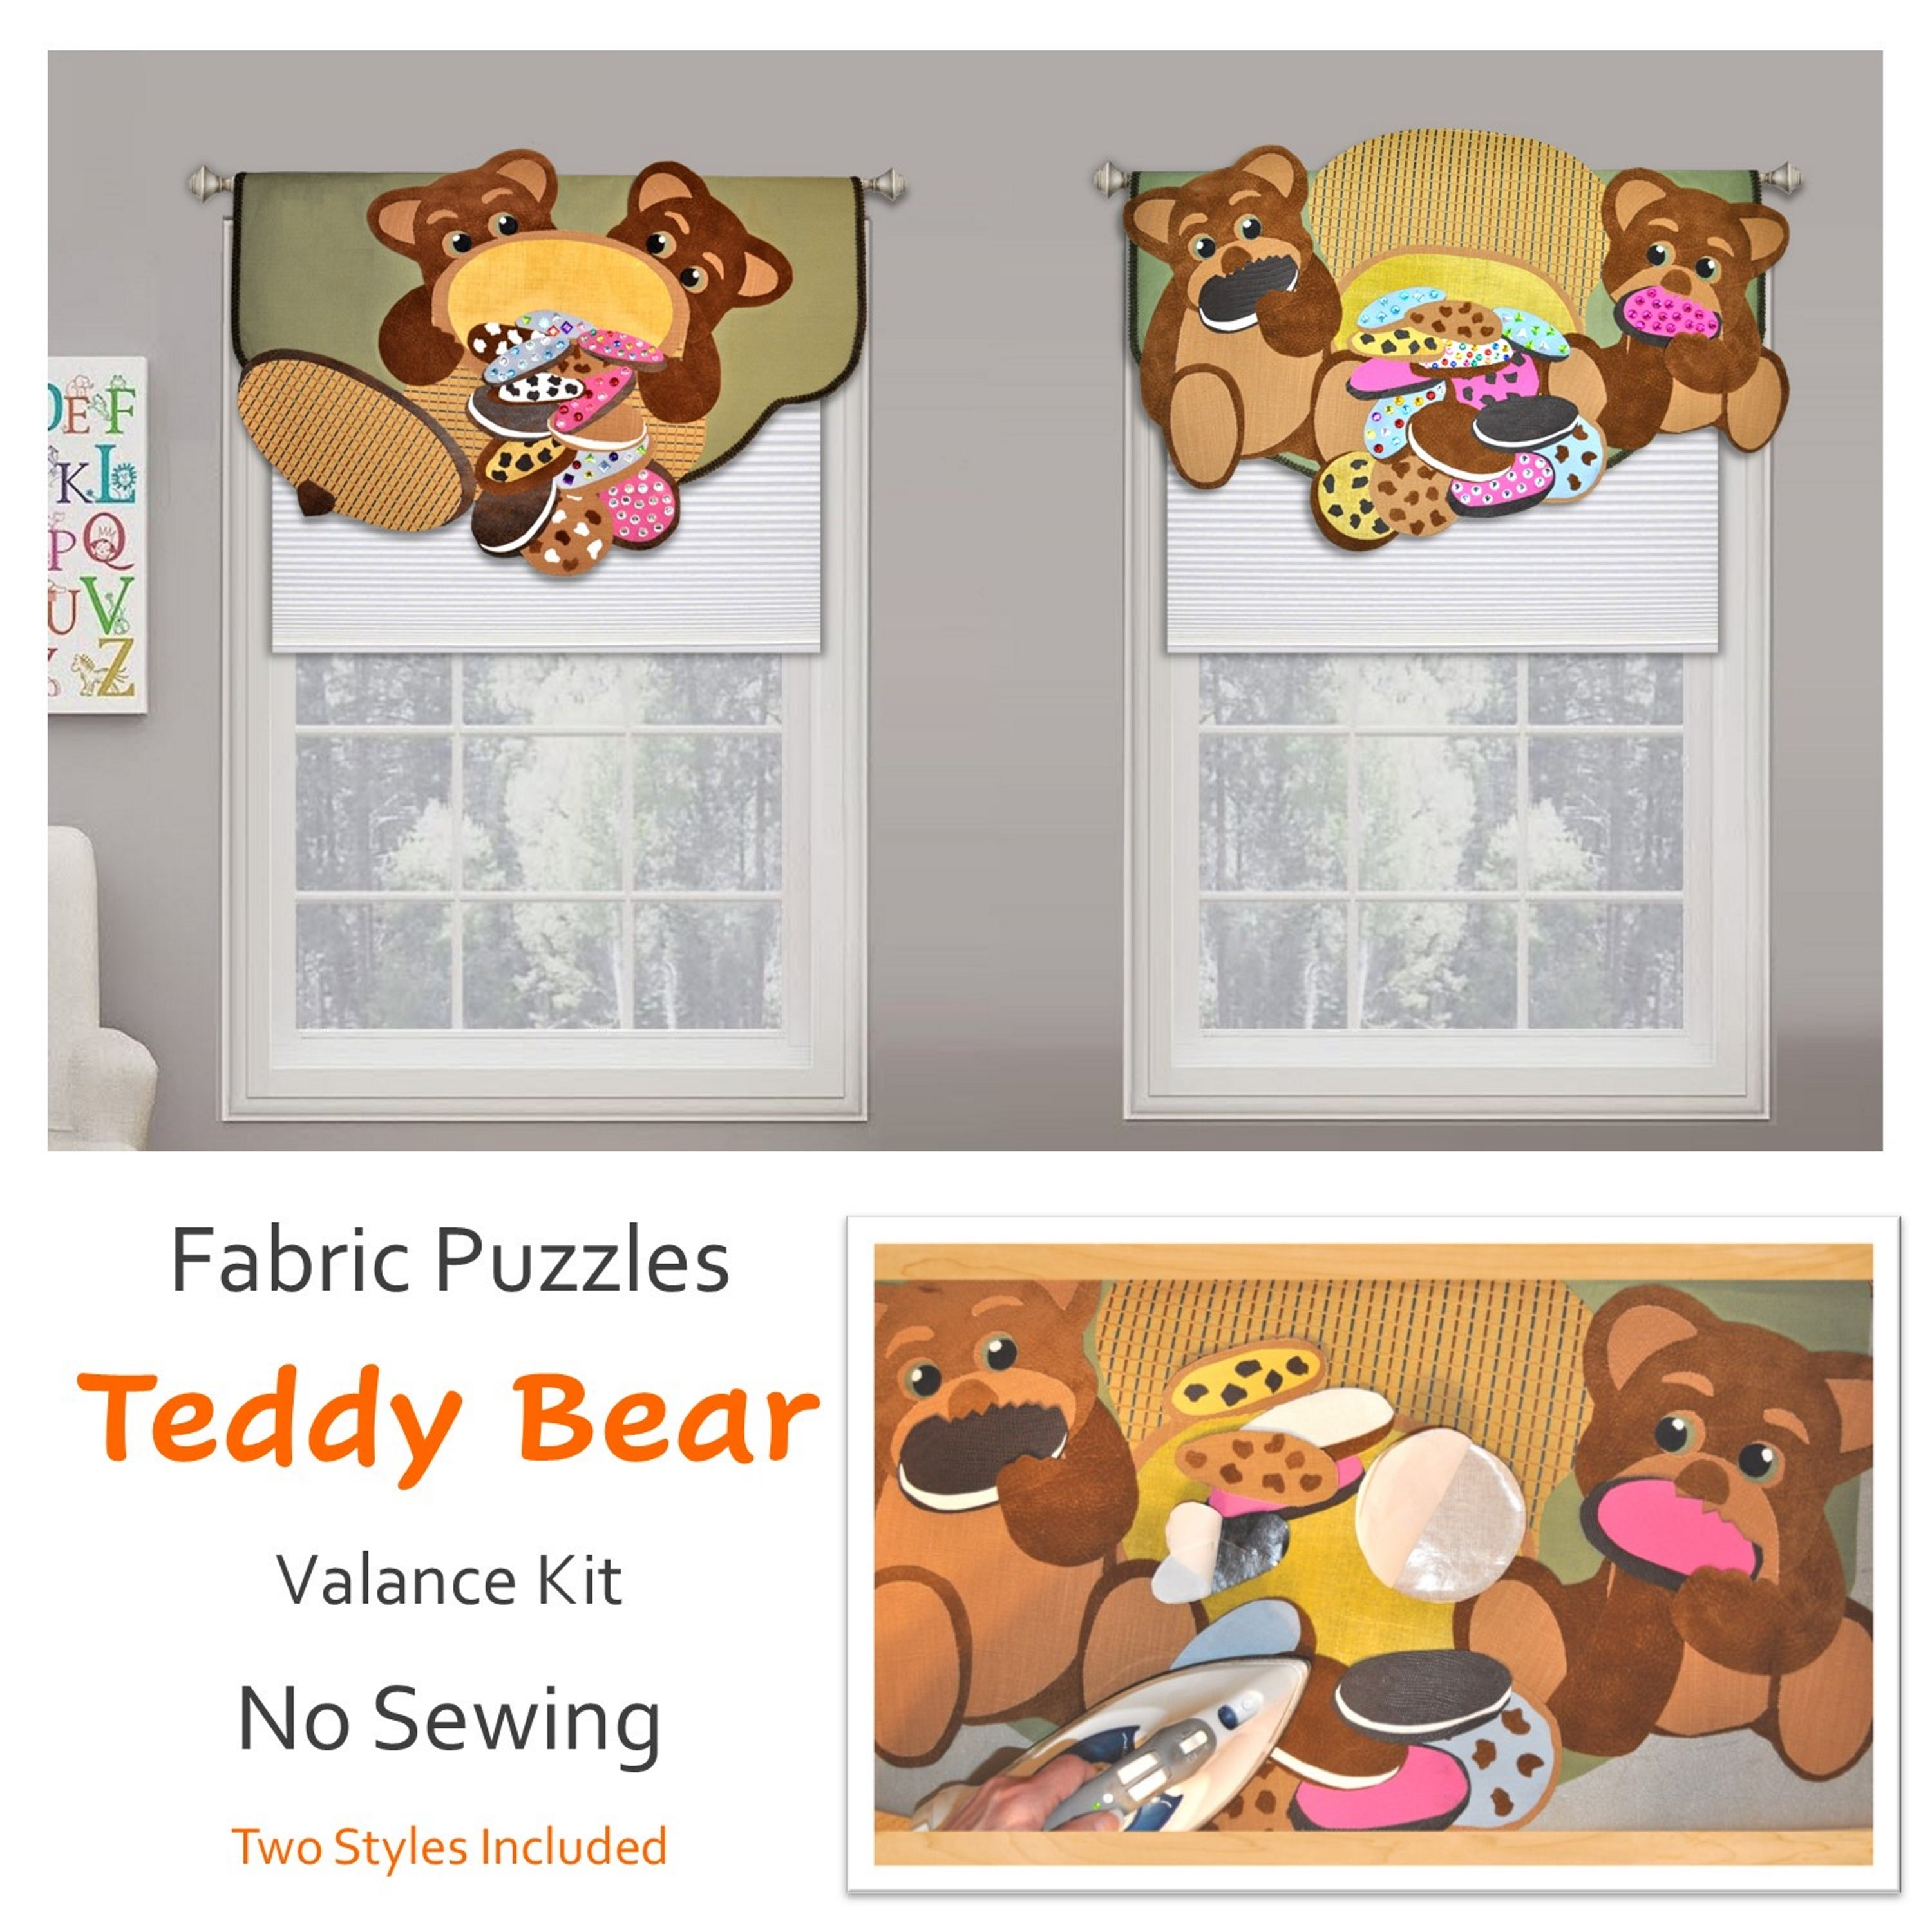 Children's teddy bear, 3D window decoration, window valance for kids bedroom or nursery, no sewing